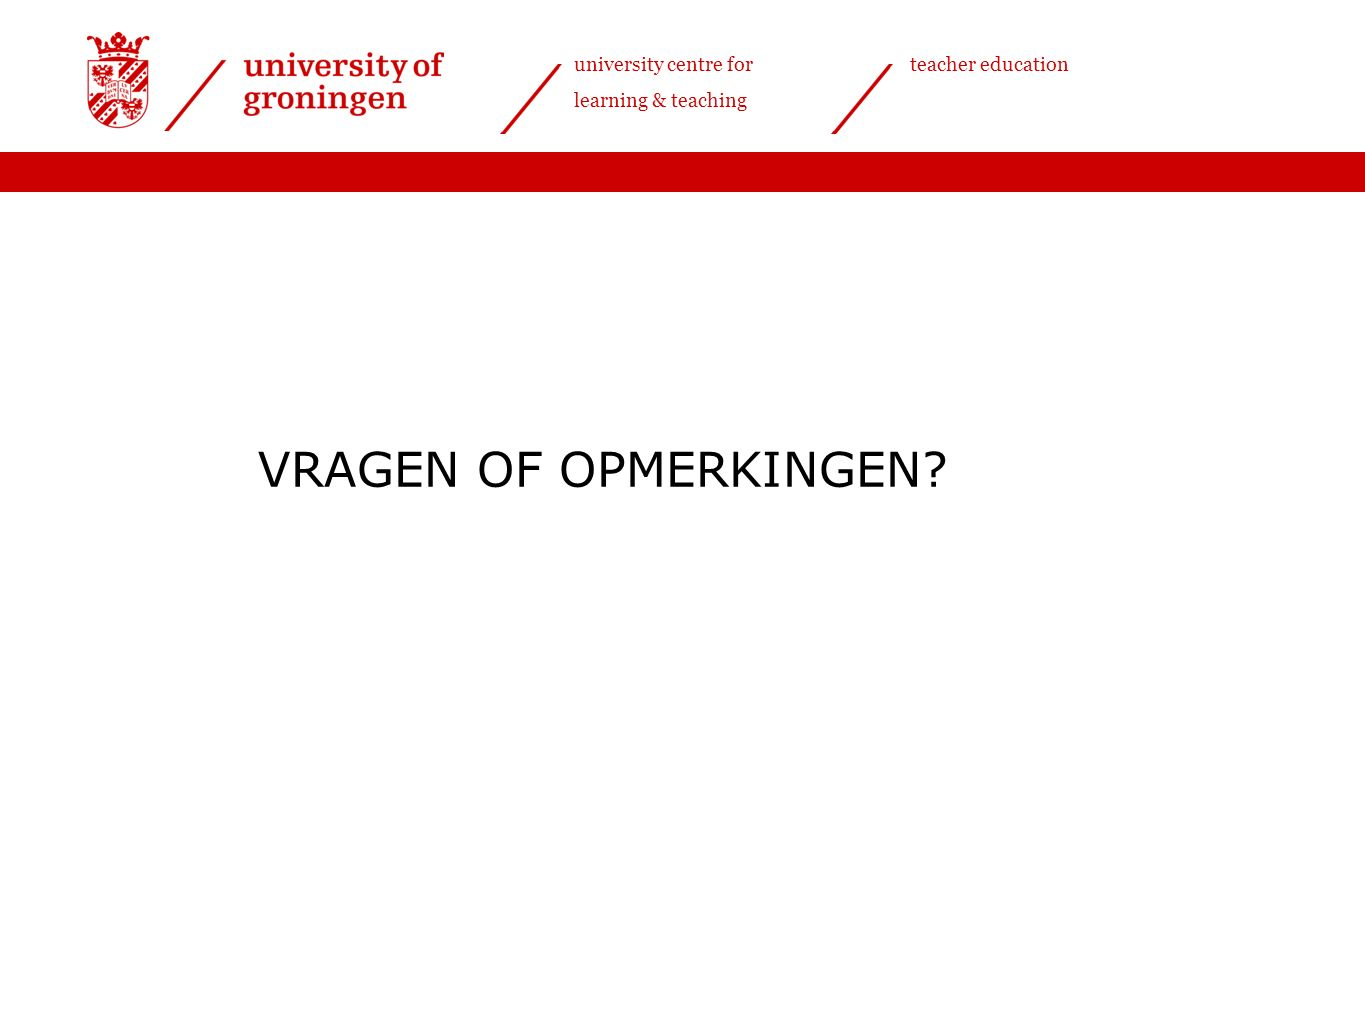 university centre for learning & teaching teacher education VRAGEN OF OPMERKINGEN